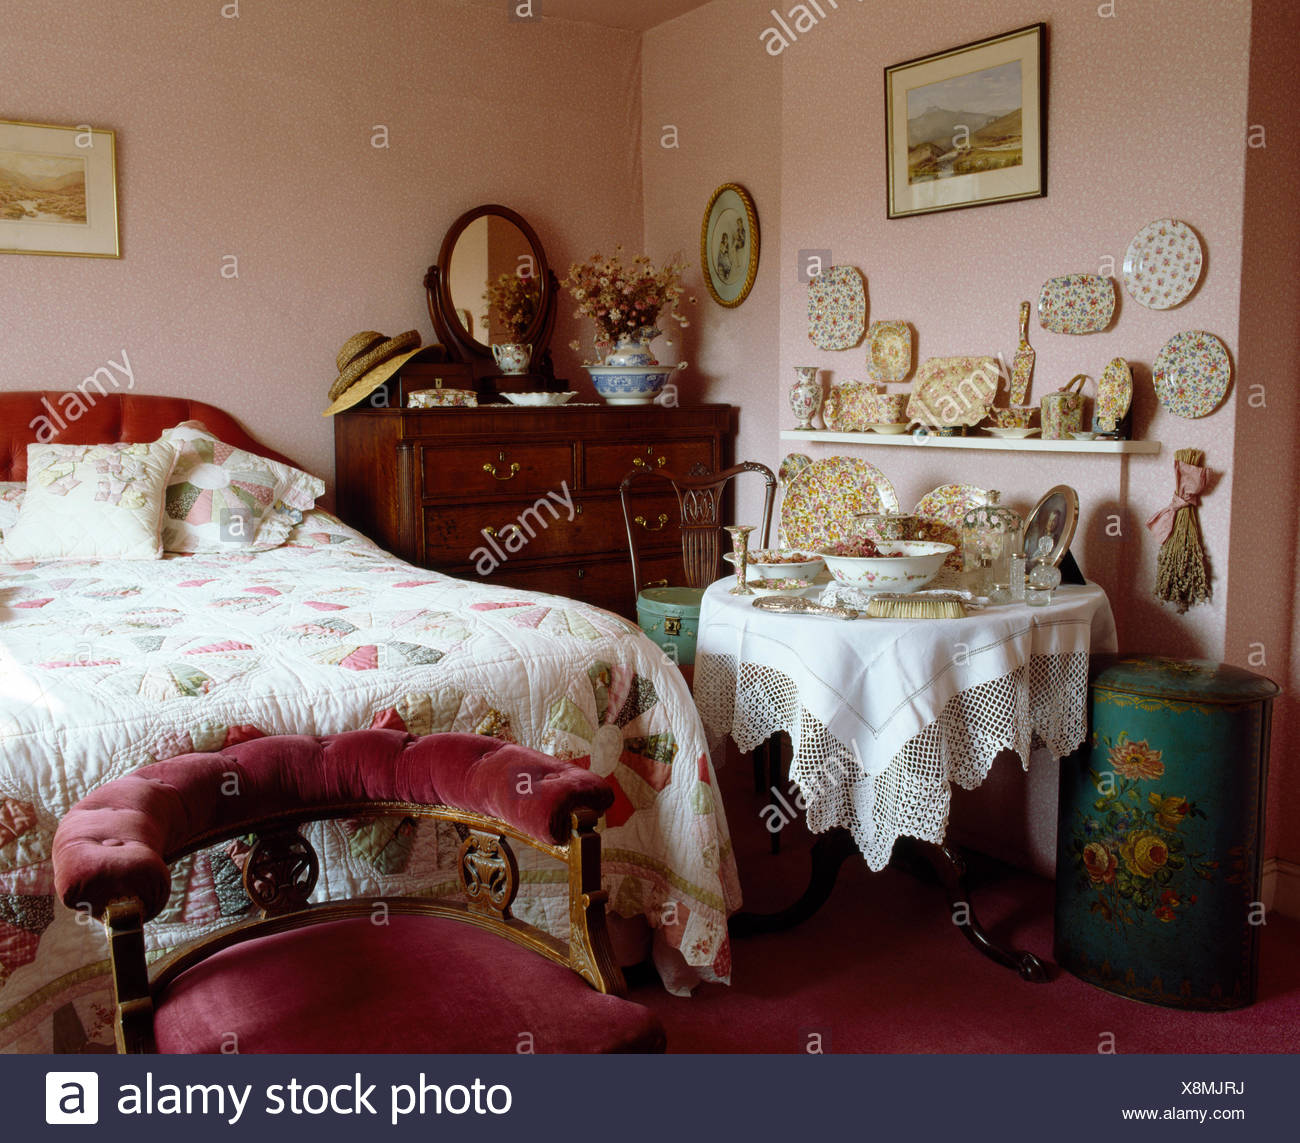 Pink velvet upholstered chair below bed with patchwork quilt in ...